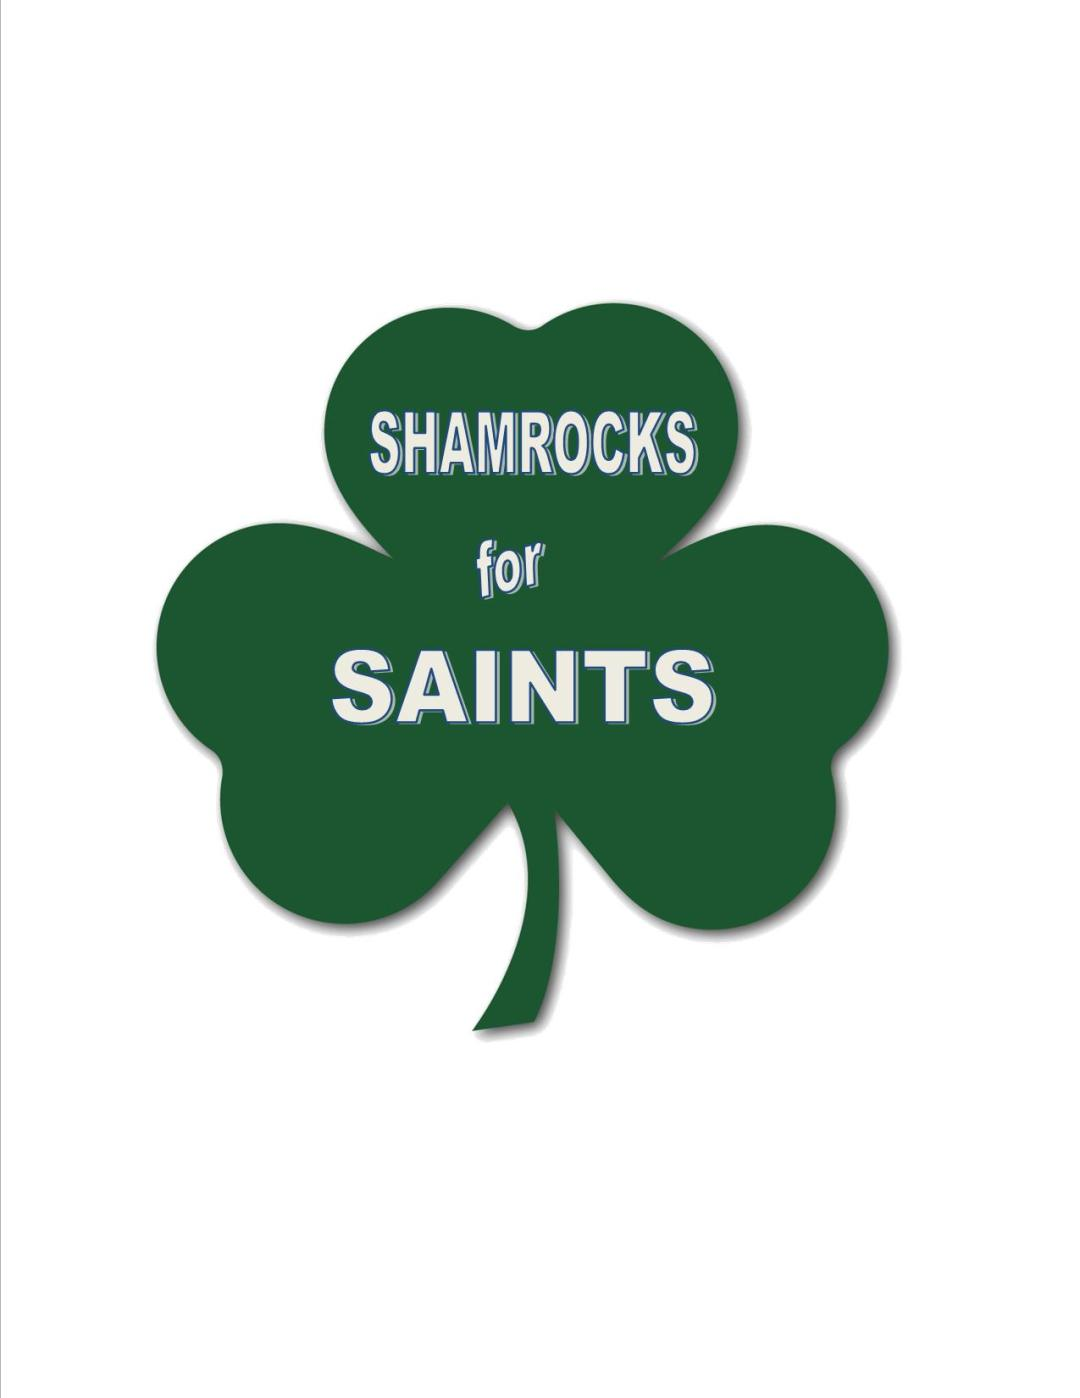 shamrock - Shamrocks for Saints